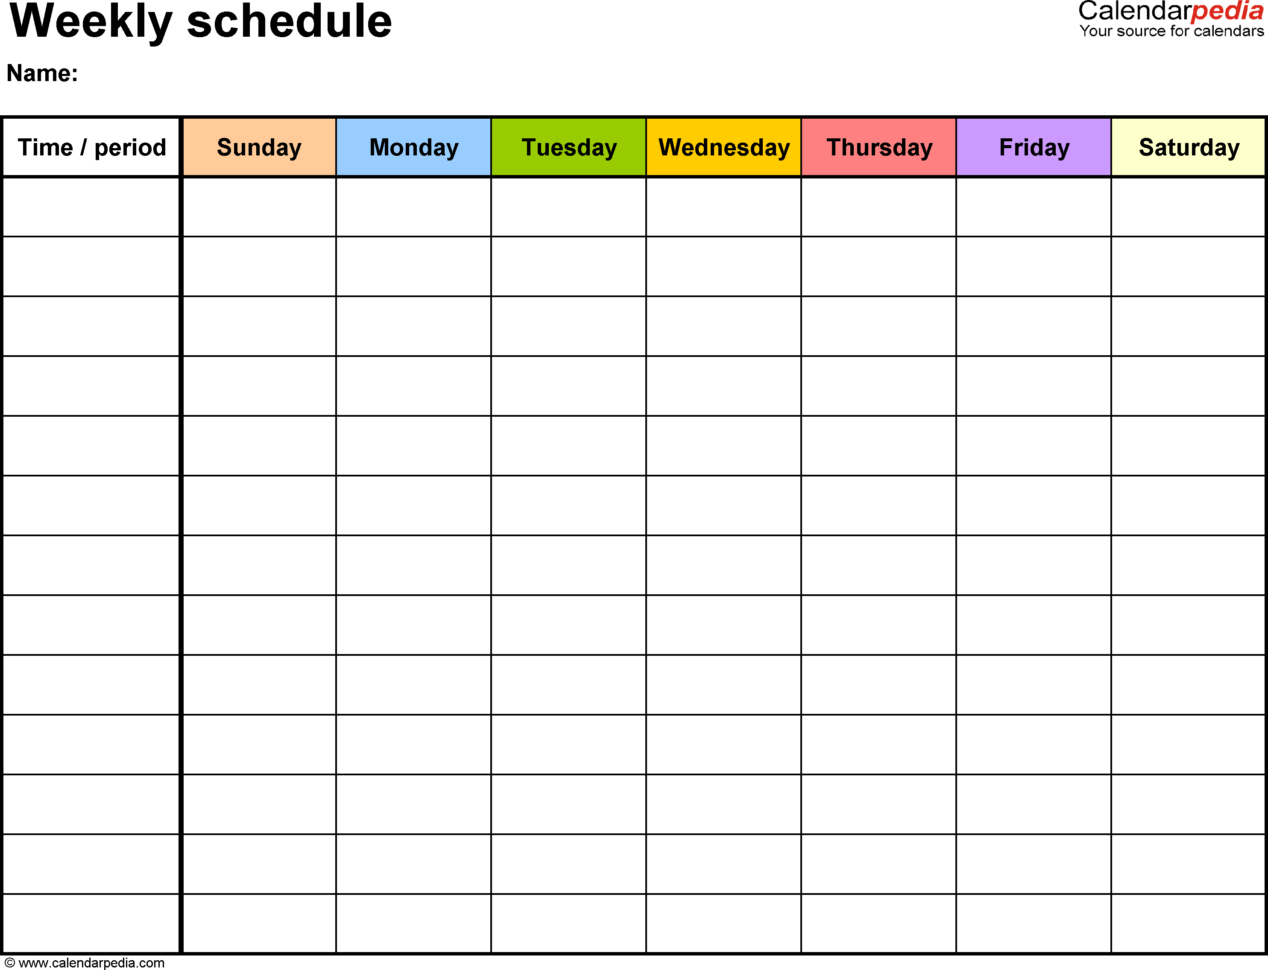 Free Weekly Schedule Templates For Word   18 Templates And Employee Schedule Templates Free